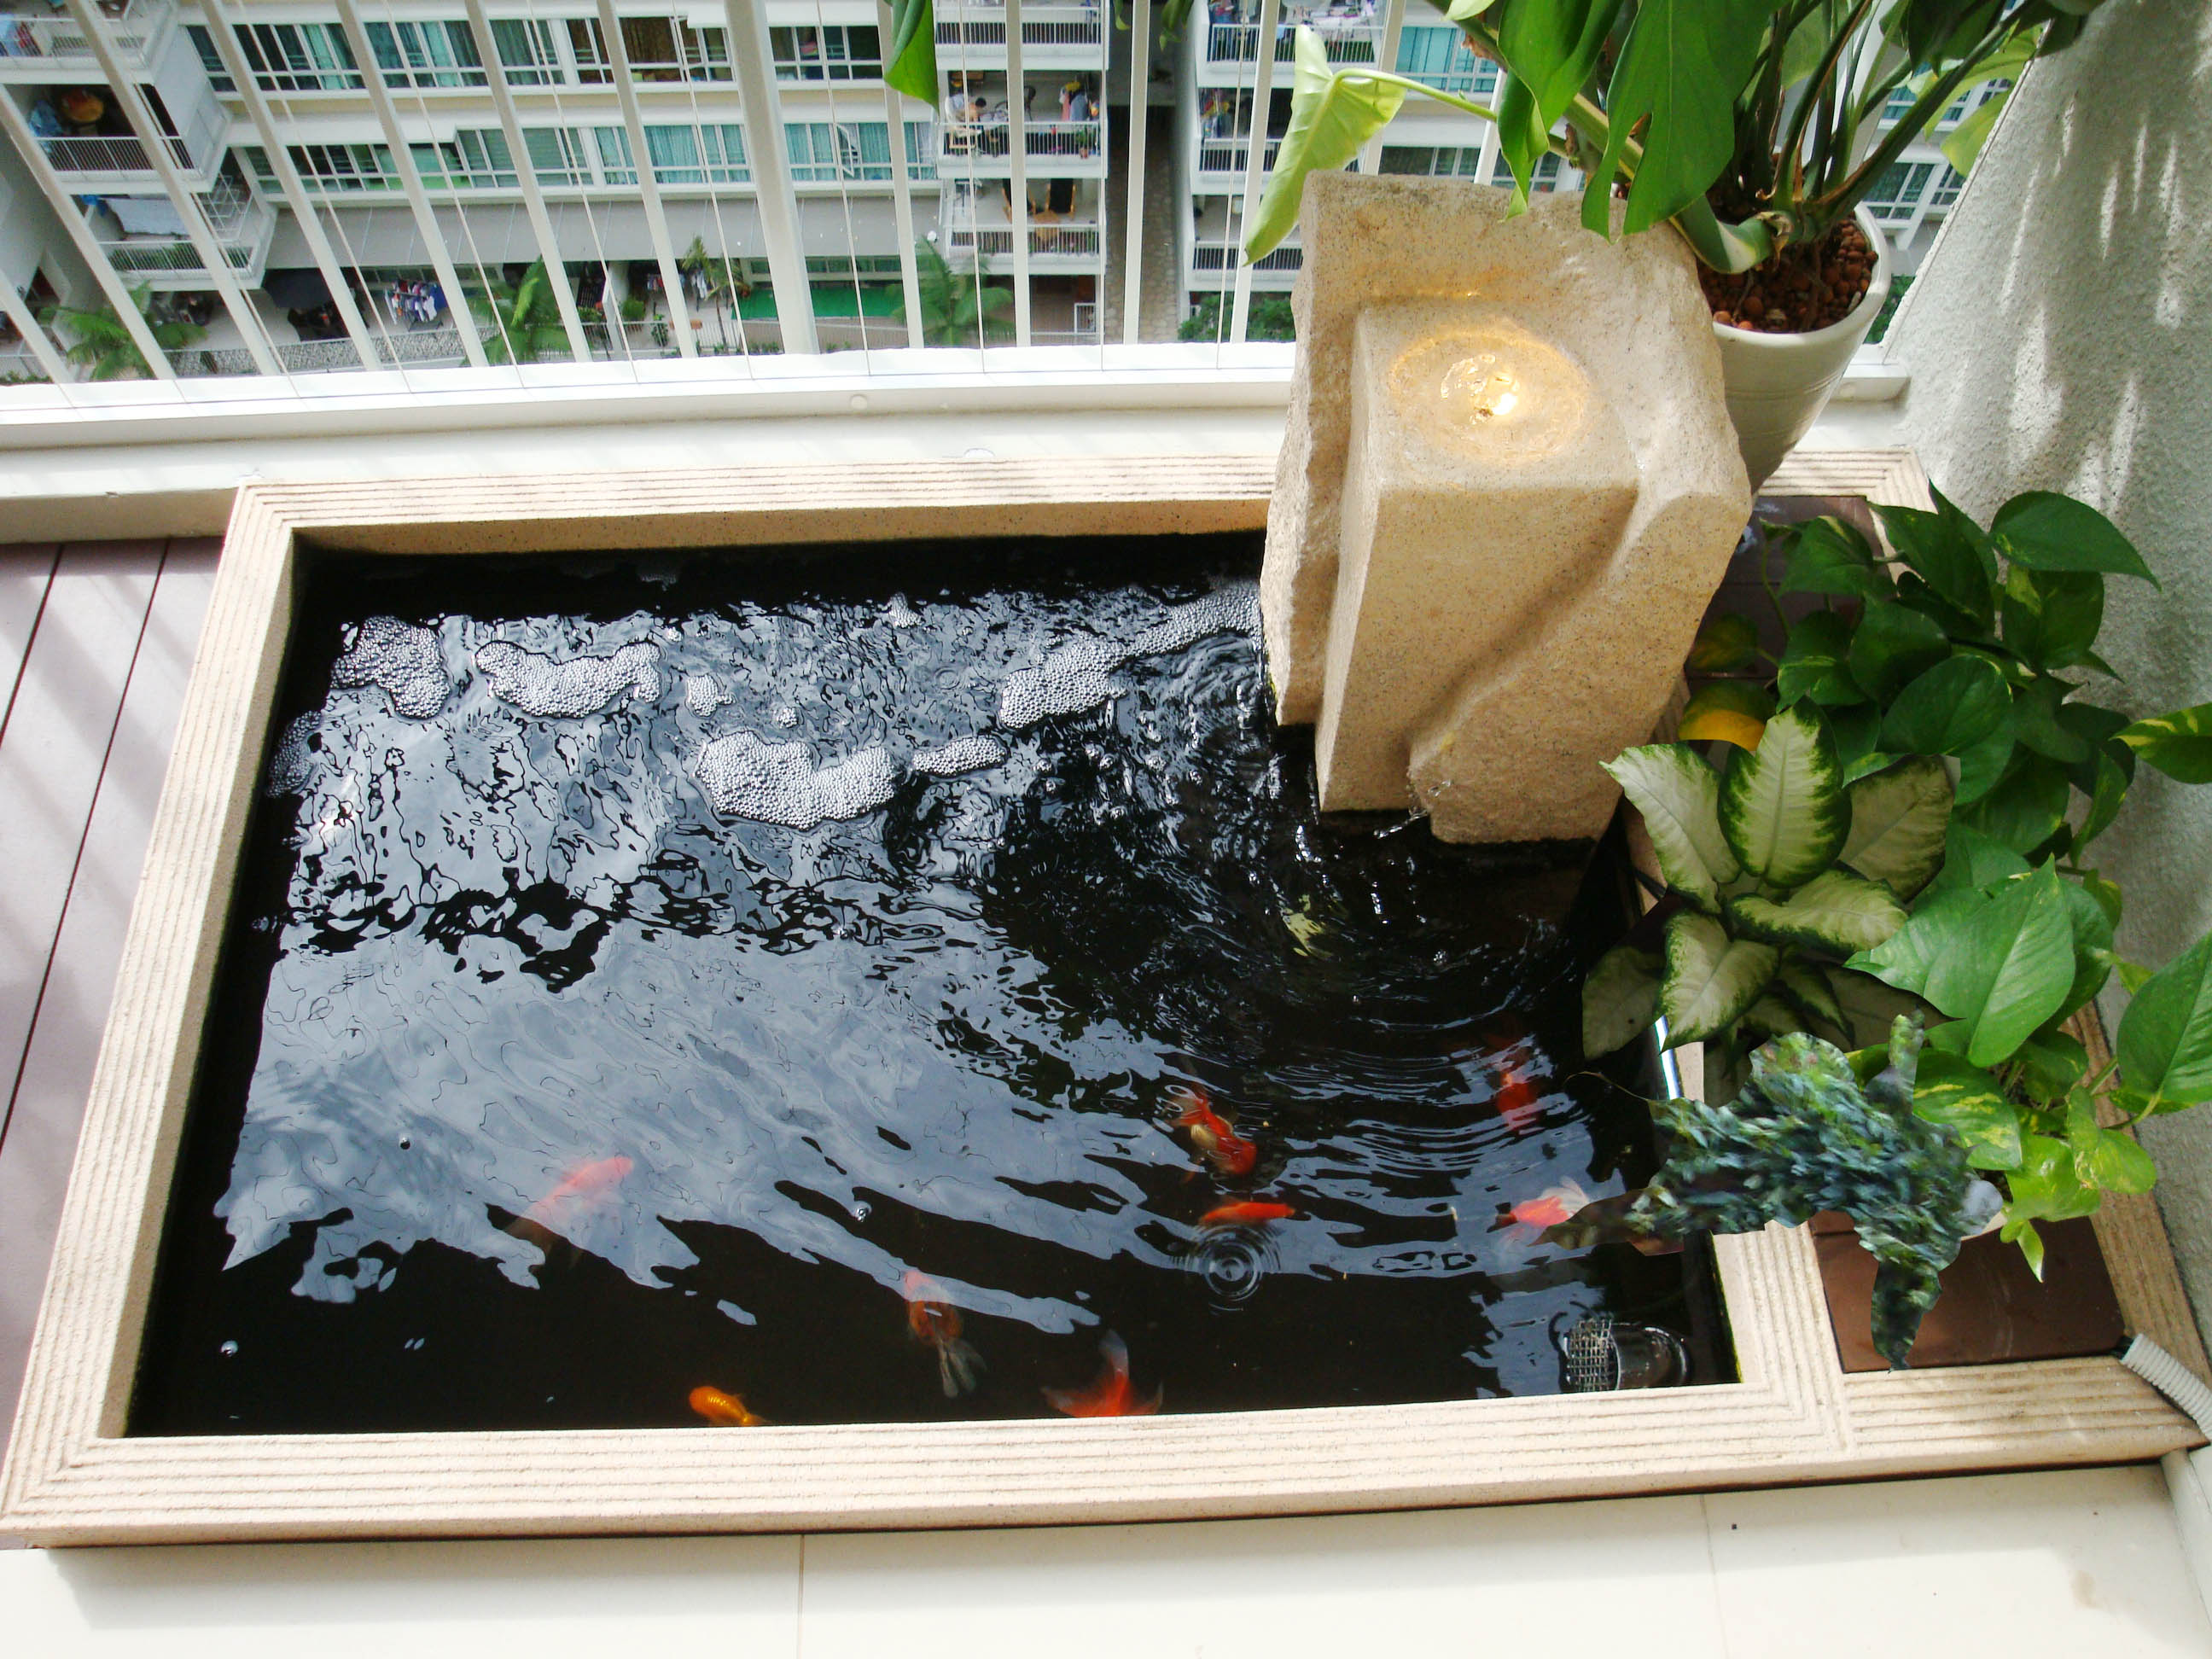 Modern Design Aquatic Pond at Balcony